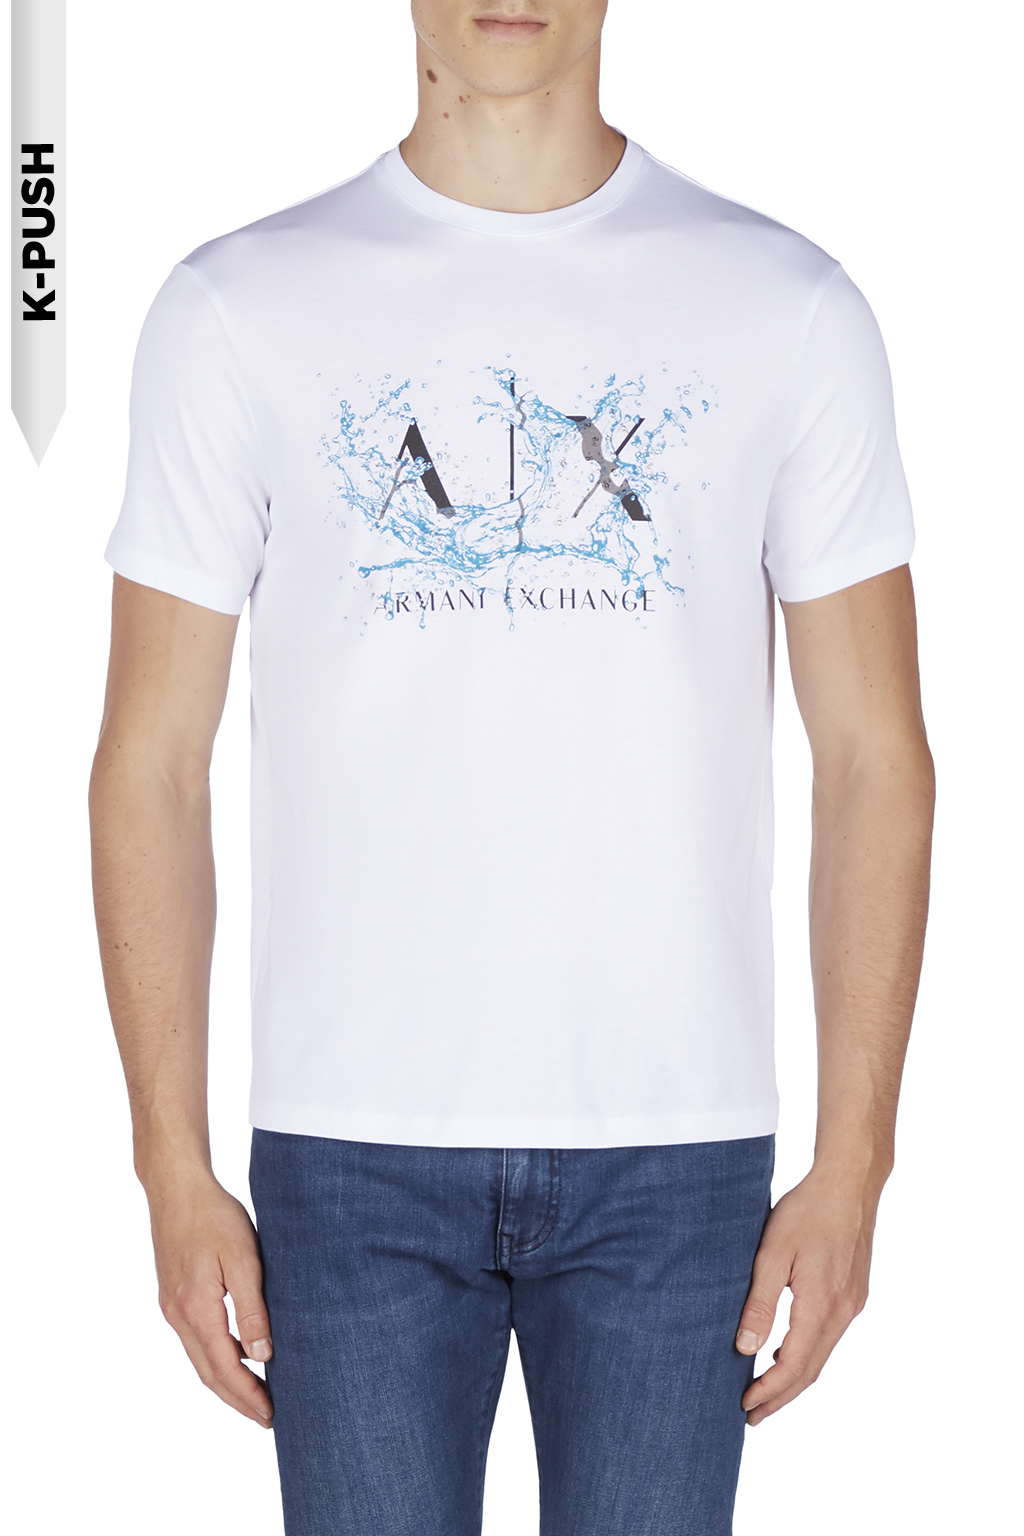 T-shirt uomo ARMANI EXCHANGE stampa